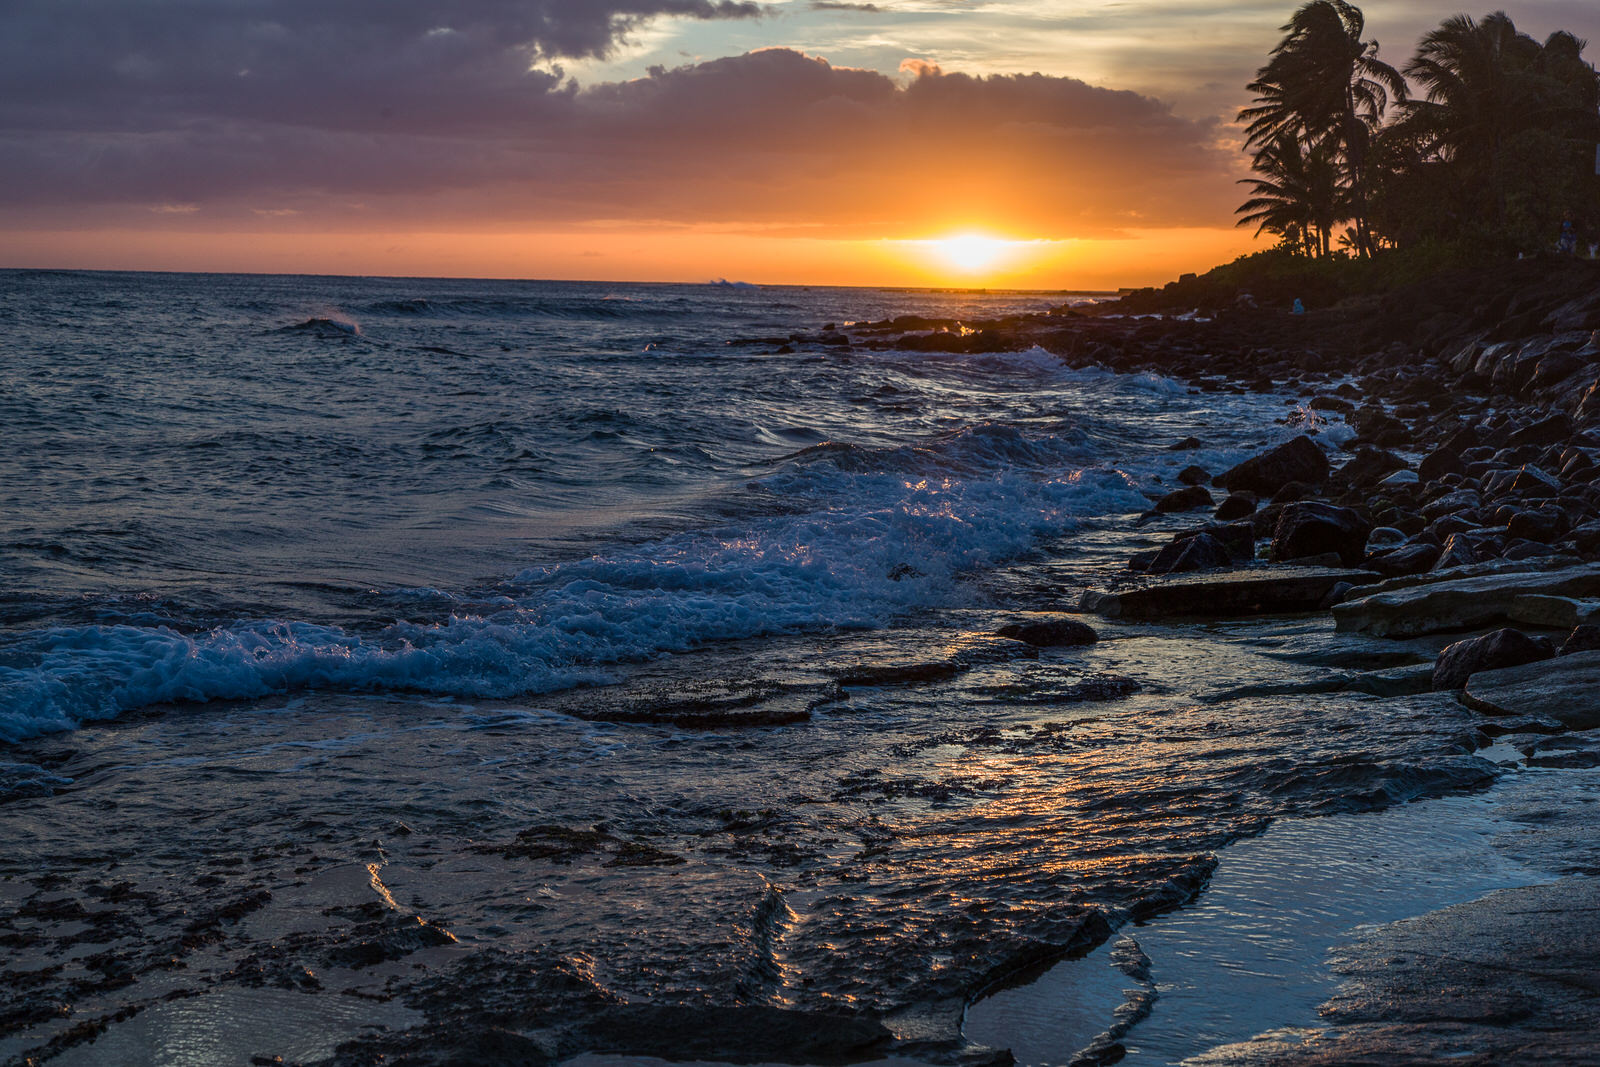 Classic Hawaiian sunset on Kauai